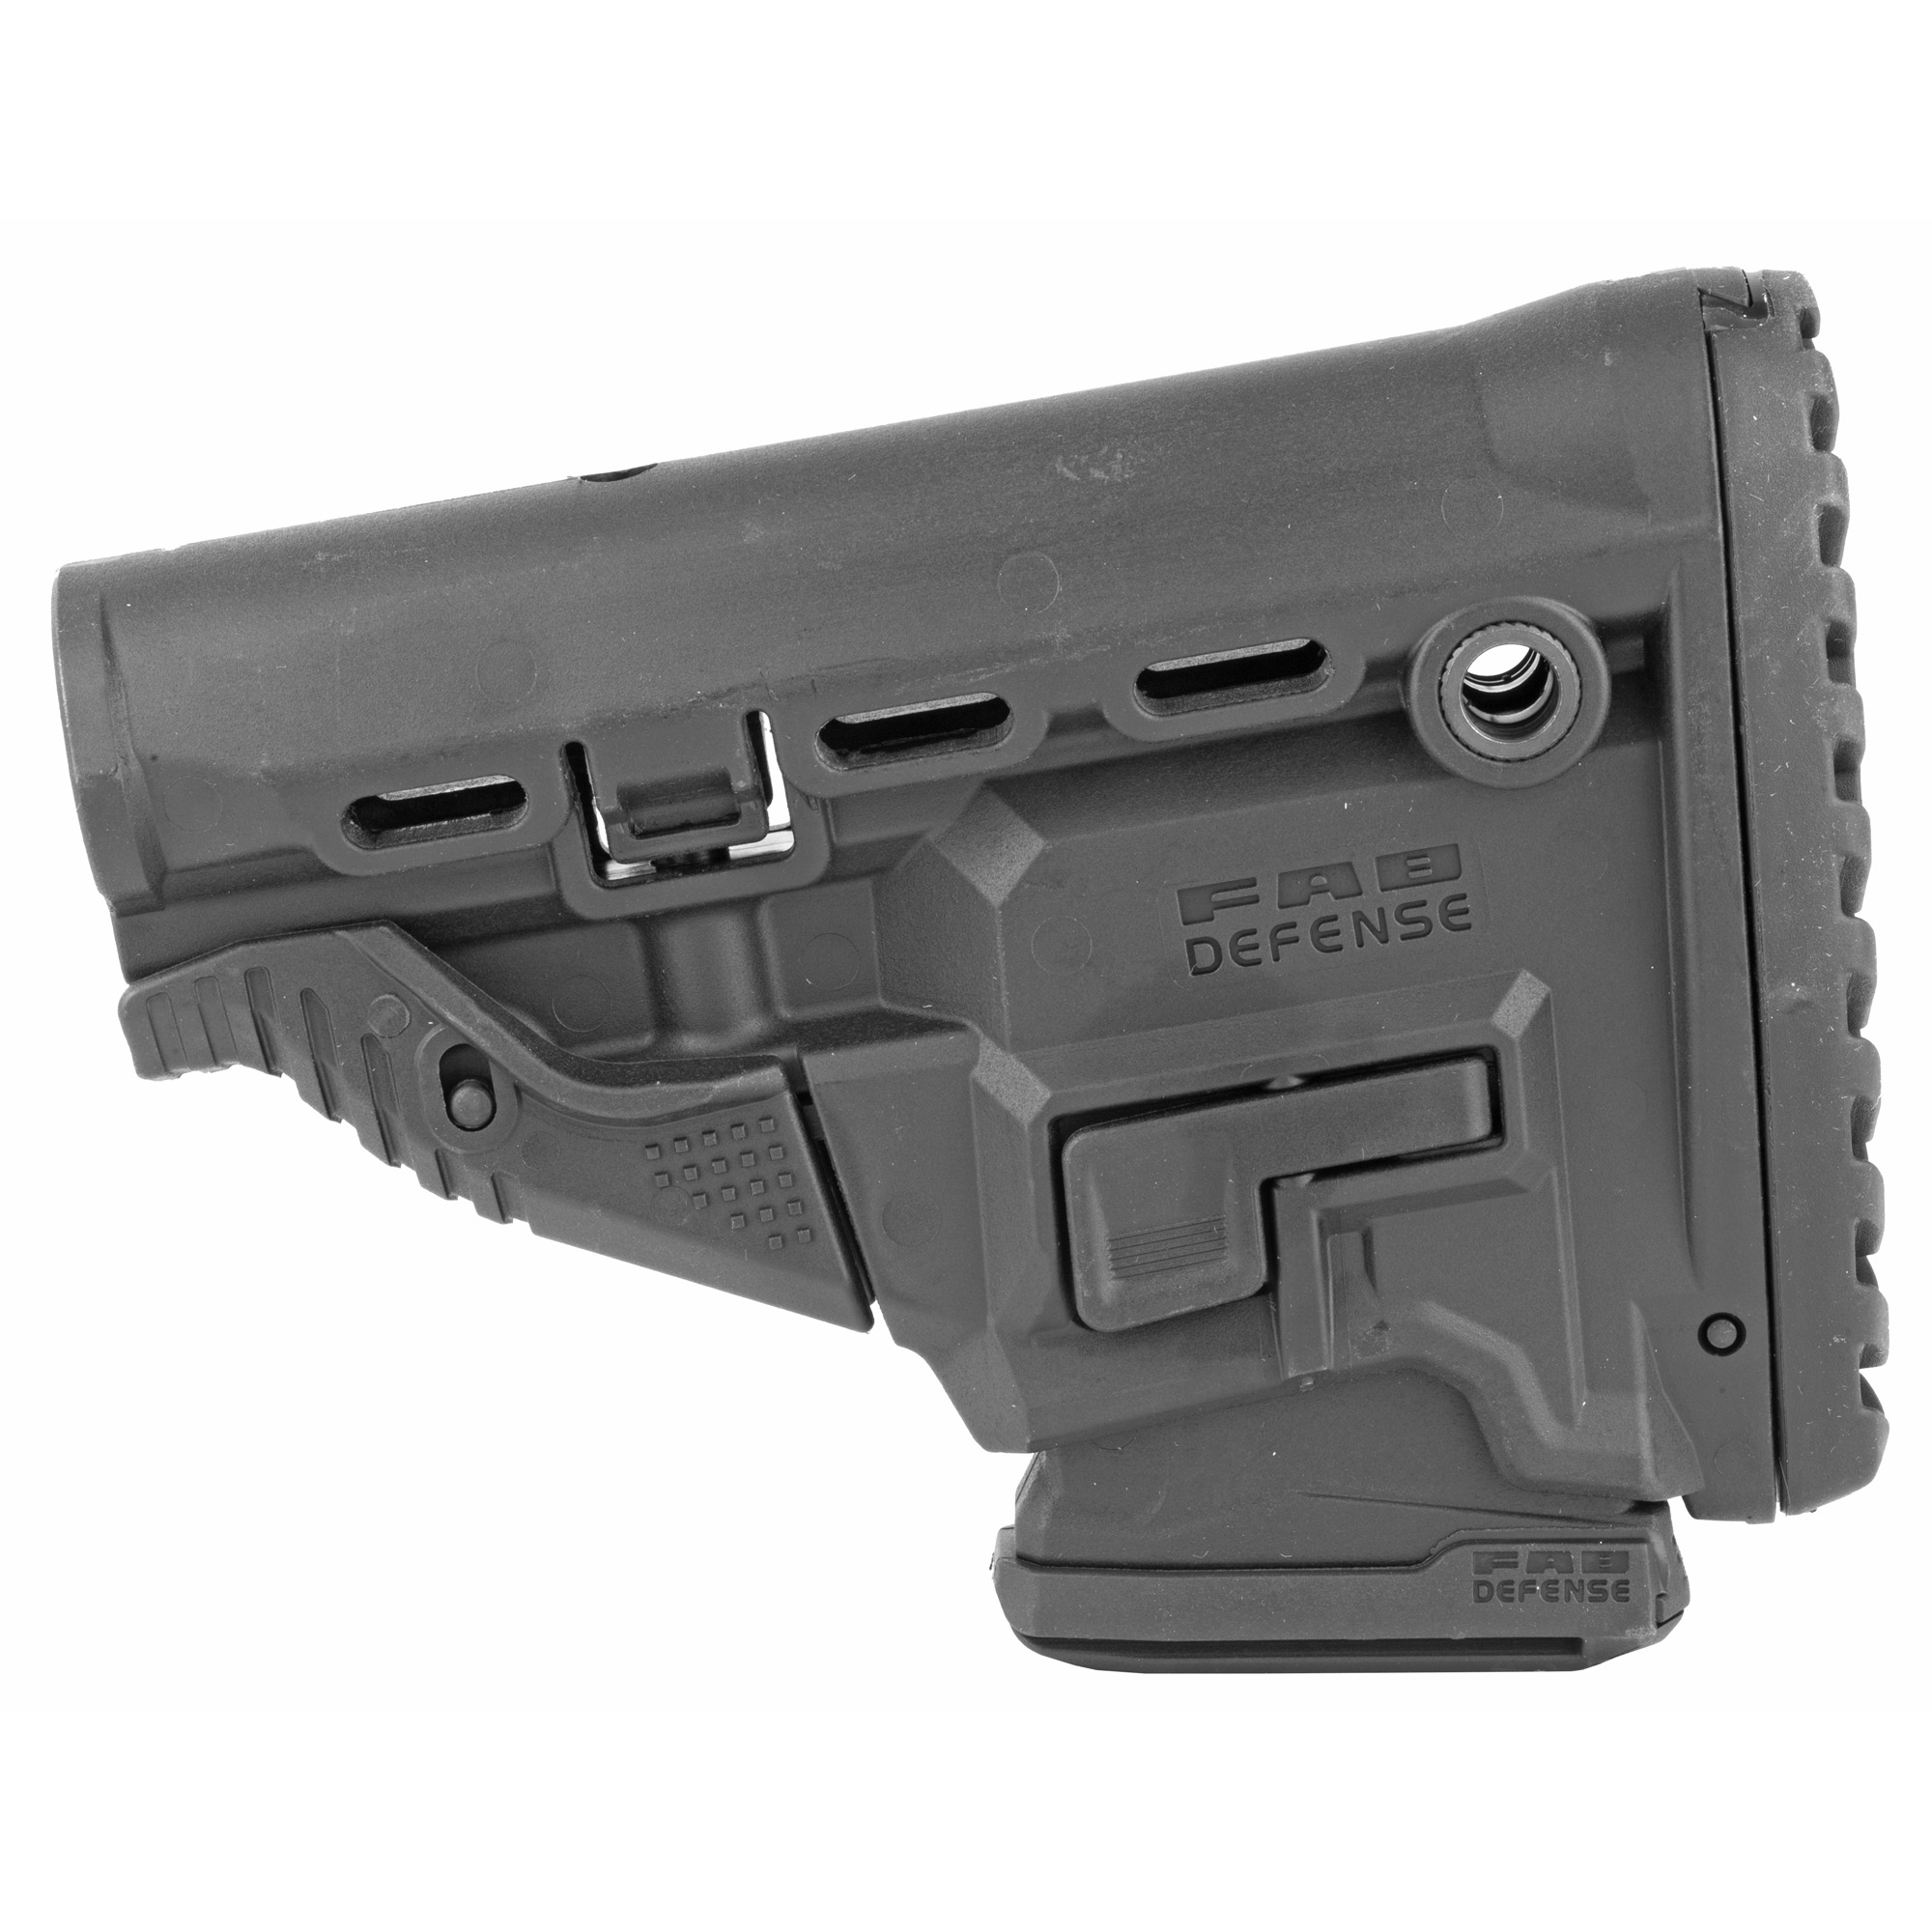 "The GL-MAG incorporates an inconspicuous/sleek M4 Magazine Carrier. Whether it's your accuracy or numerous target engagements"" you can depend on your last ten chances with FAB'S Survival Buttstock w/Built-in 10 round Mag Carrier."